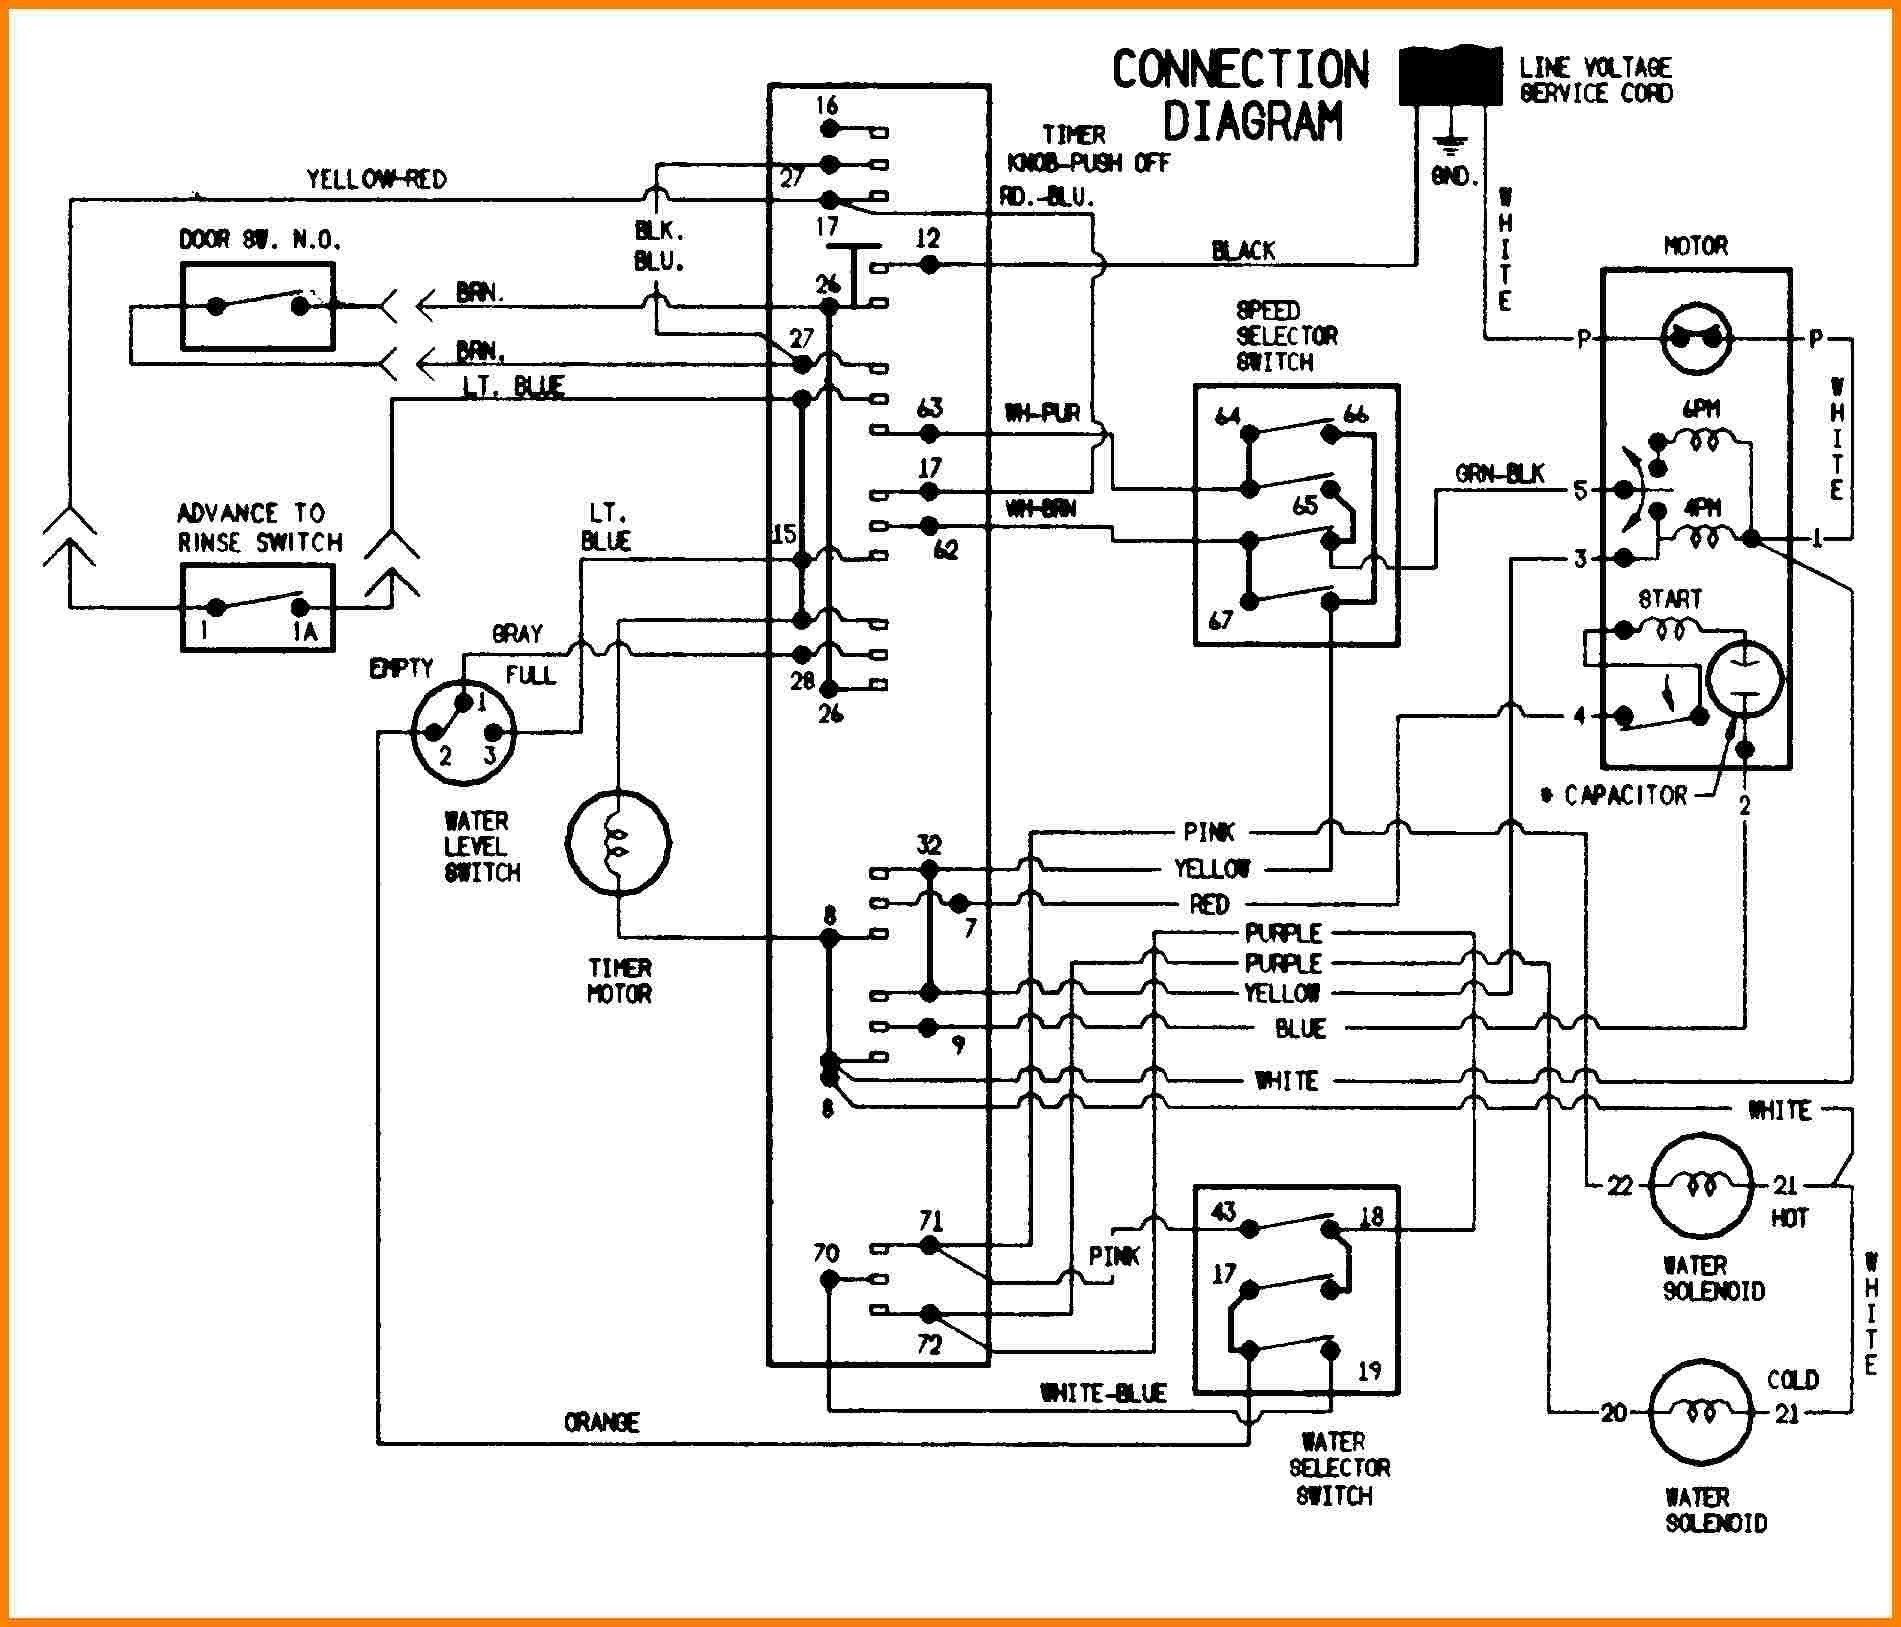 Contactor Wiring Diagram Ac Unit In 2020 Washing Machine Motor Circuit Diagram Washing Machine Whirlpool